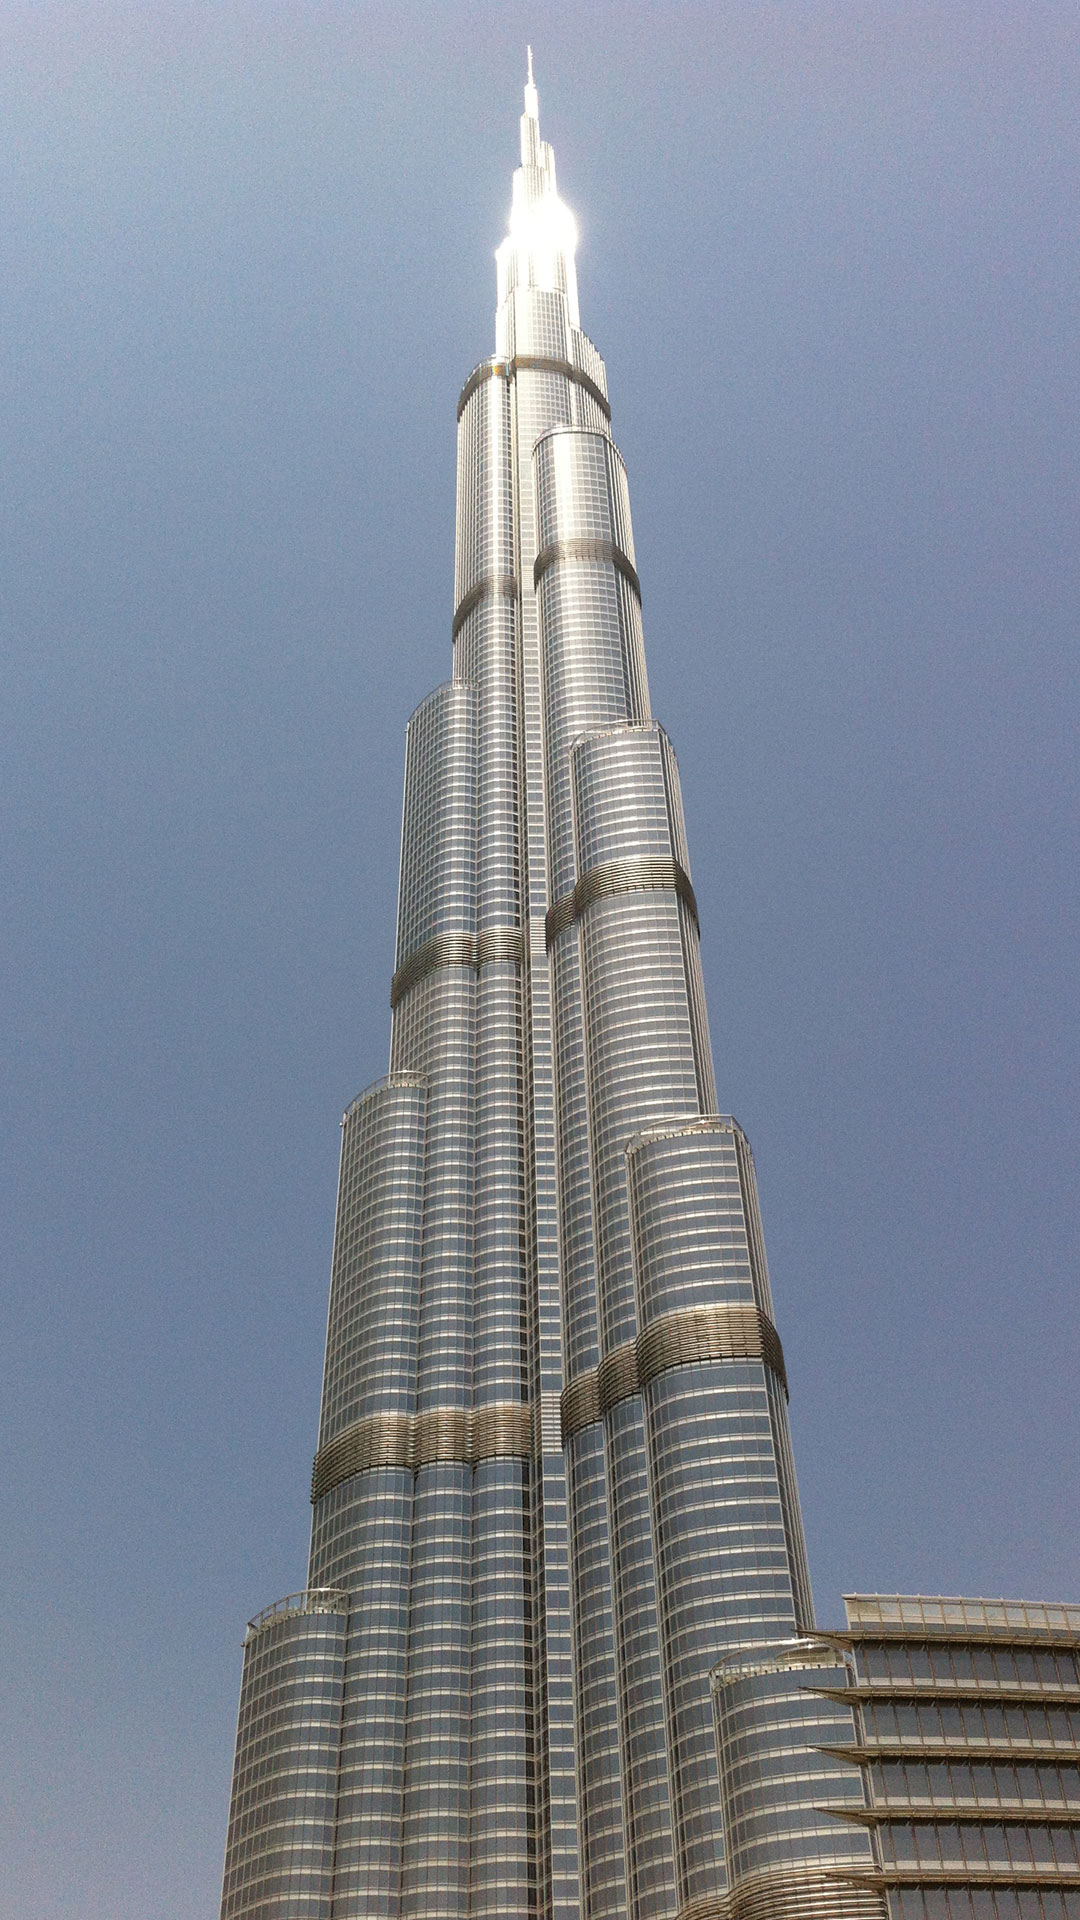 Burj Khalifa is a must-see for Dubai first timers